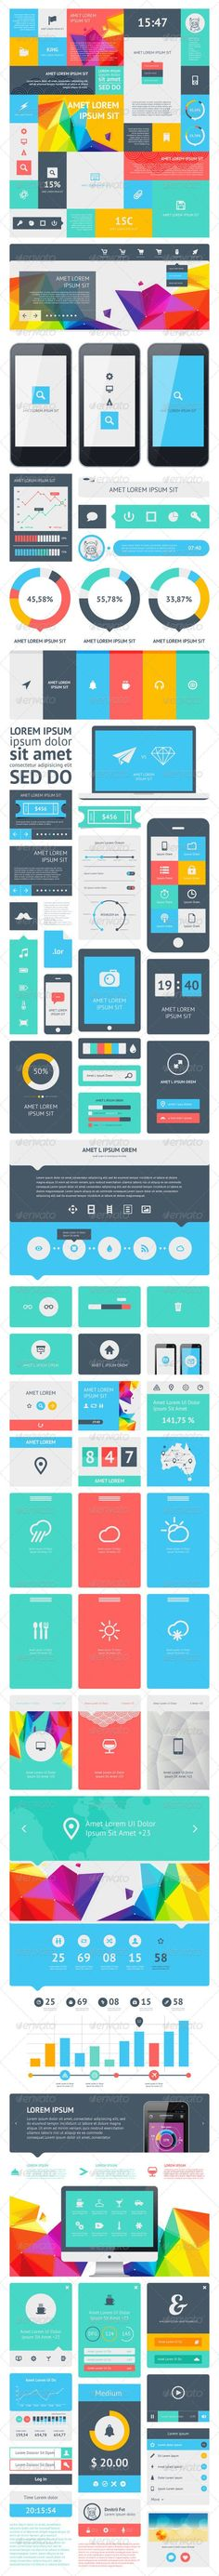 Vectors - UI Set Components Featuring Flat Design |